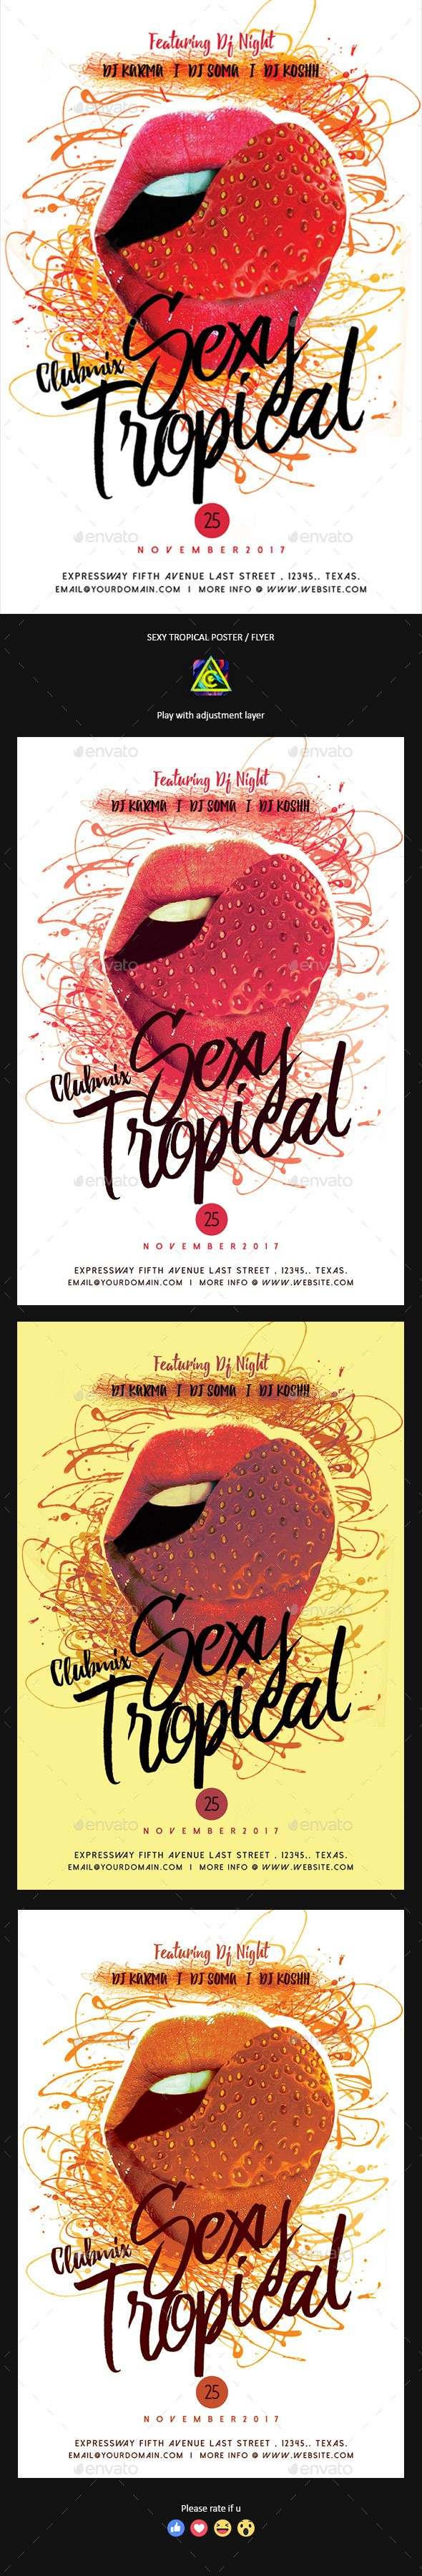 Sexy Tropical Poster / Flyer — Photoshop PSD #exotic #rnb • Available here ➝ https://graphicriver.net/item/sexy-tropical-poster-flyer/20881094?ref=pxcr